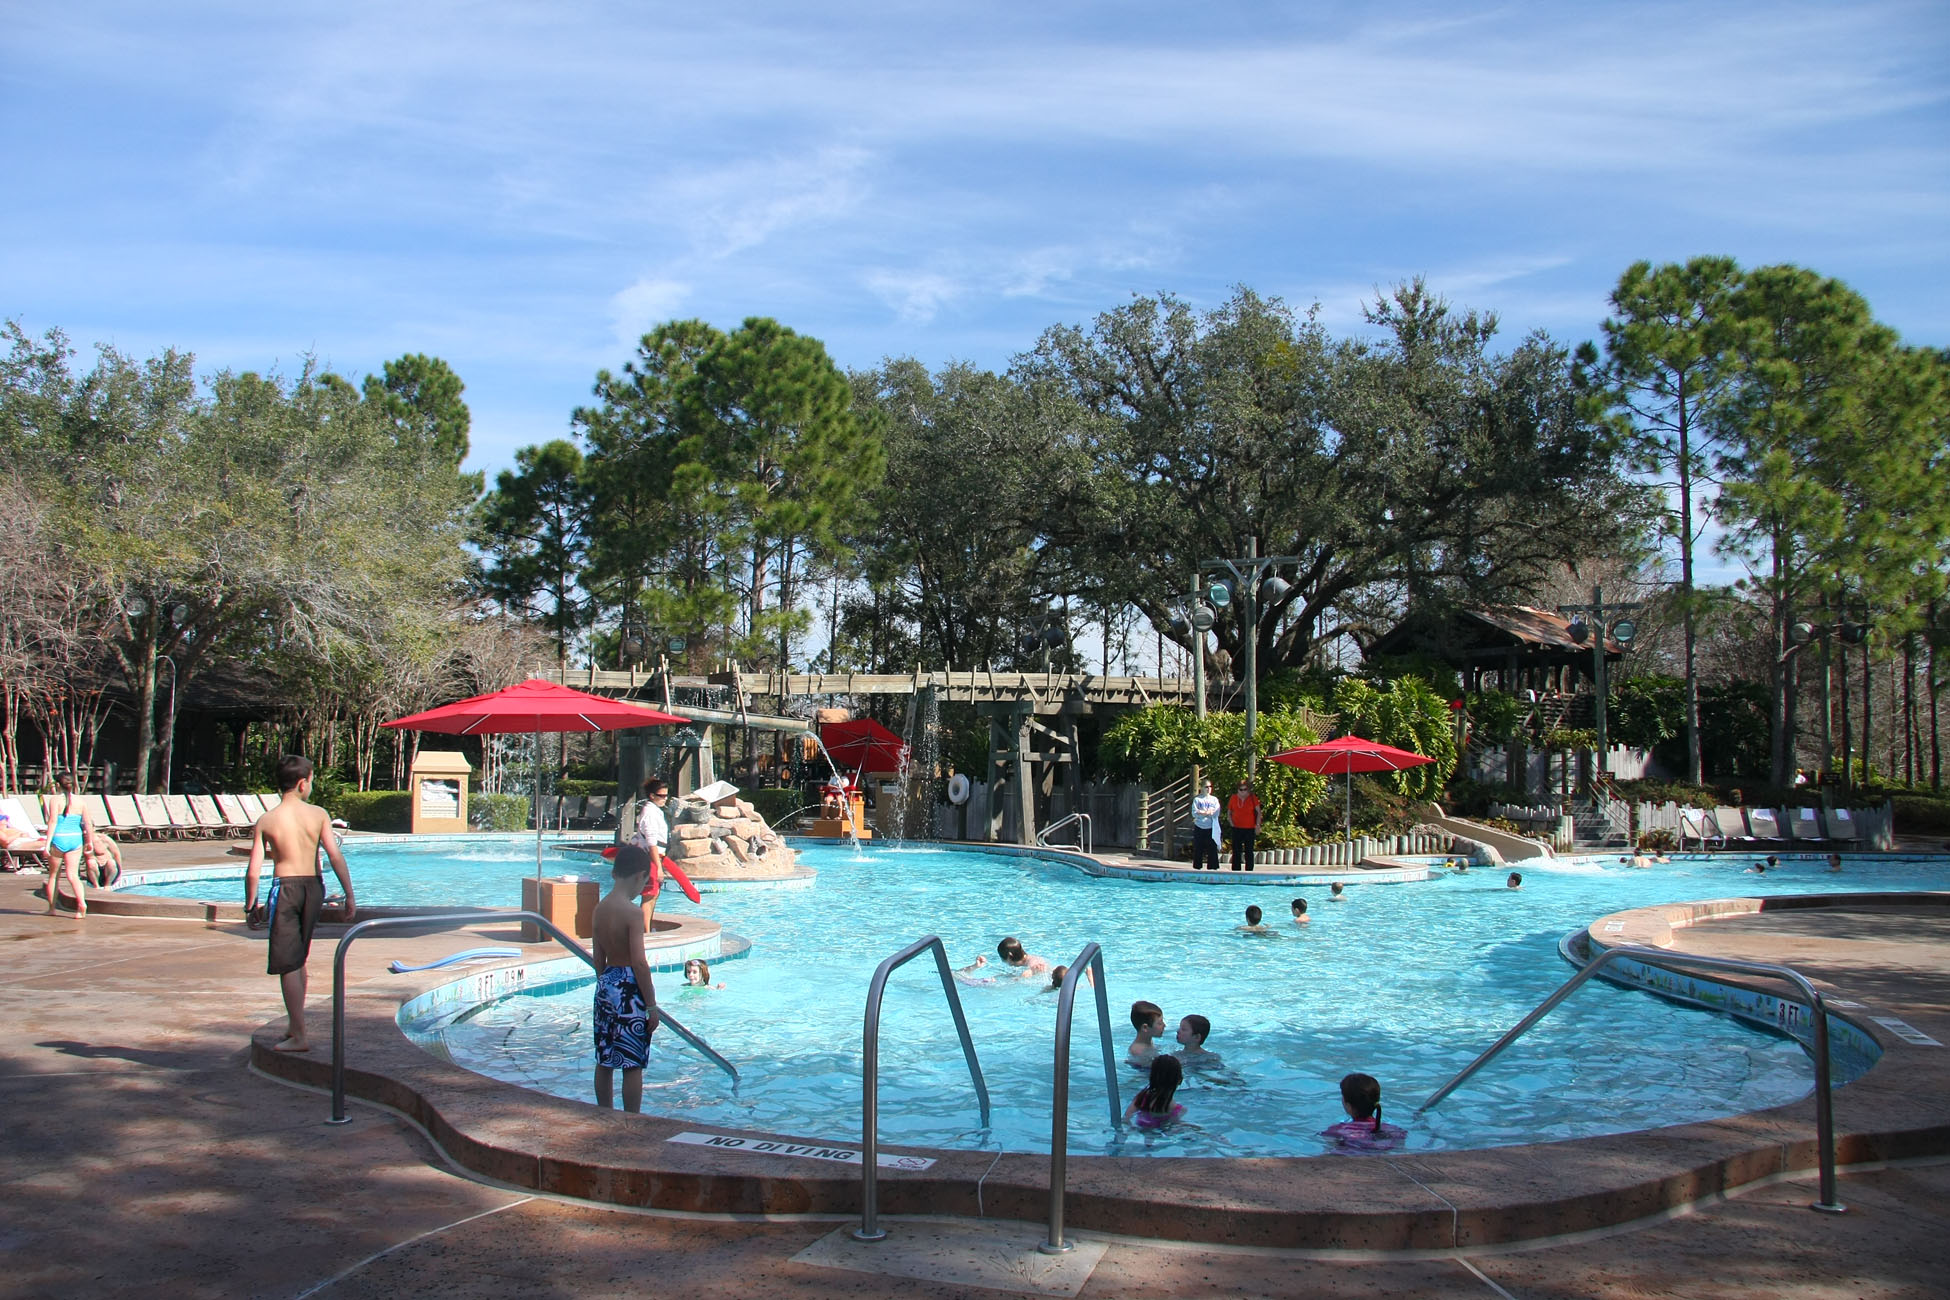 Top ten reasons for choosing to stay at disney 39 s port orleans resort for Block island resorts swimming pool